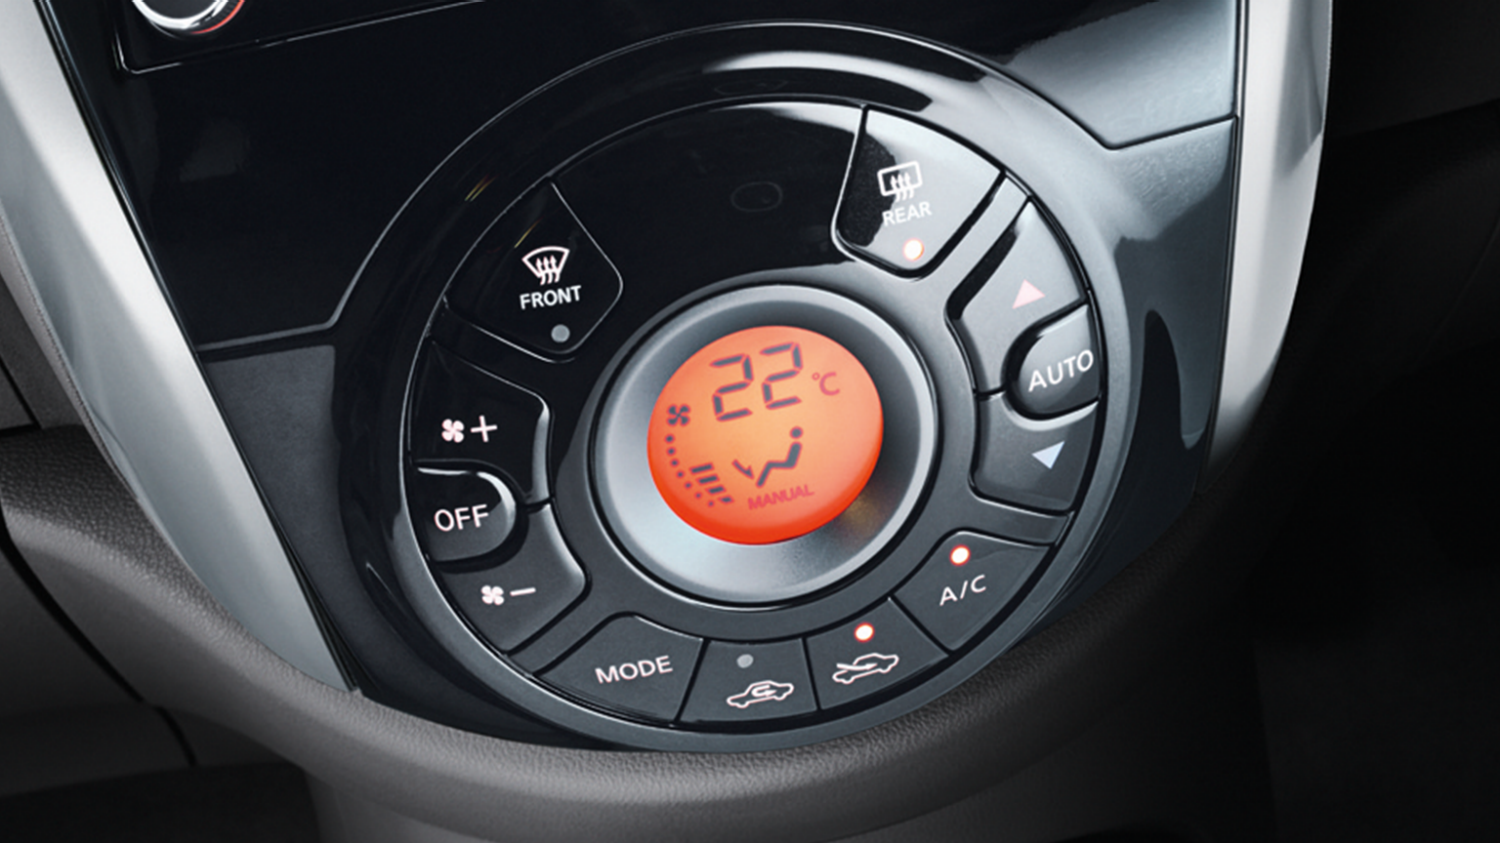 Nissan Micra | Temperature display